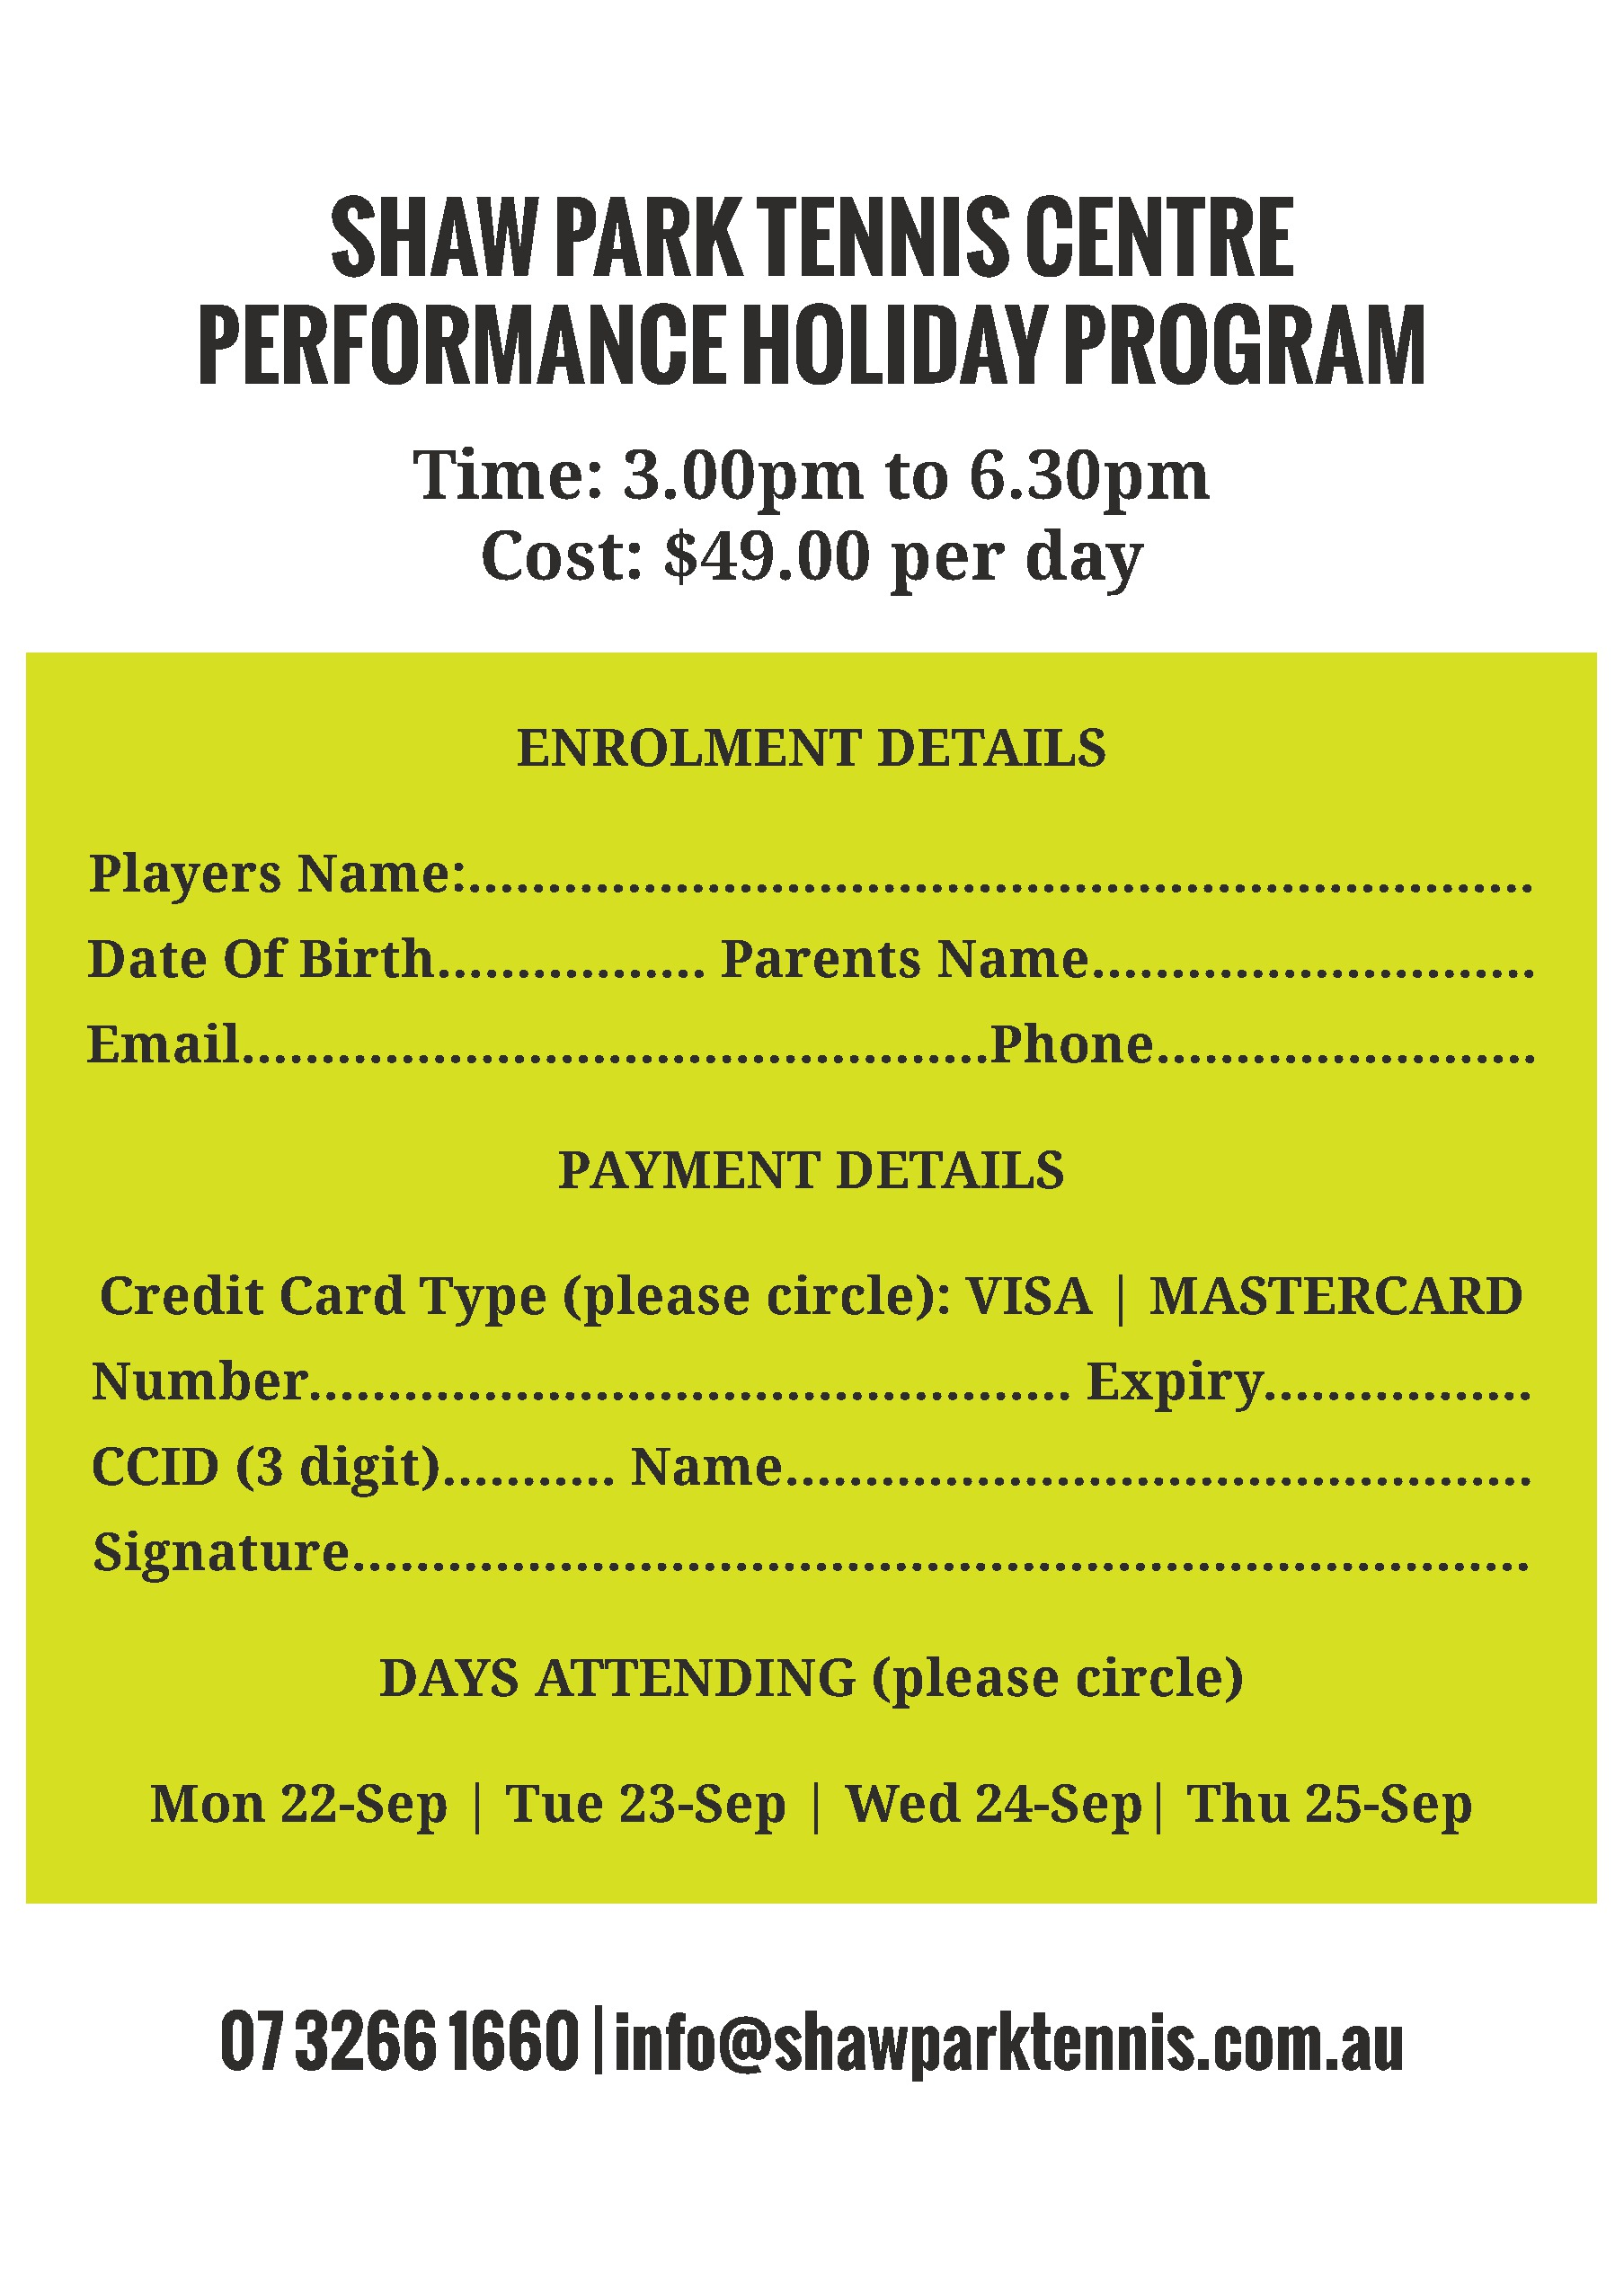 sp-perf-holiday-clinic-back-sep-2014-page-0 - Shaw Park